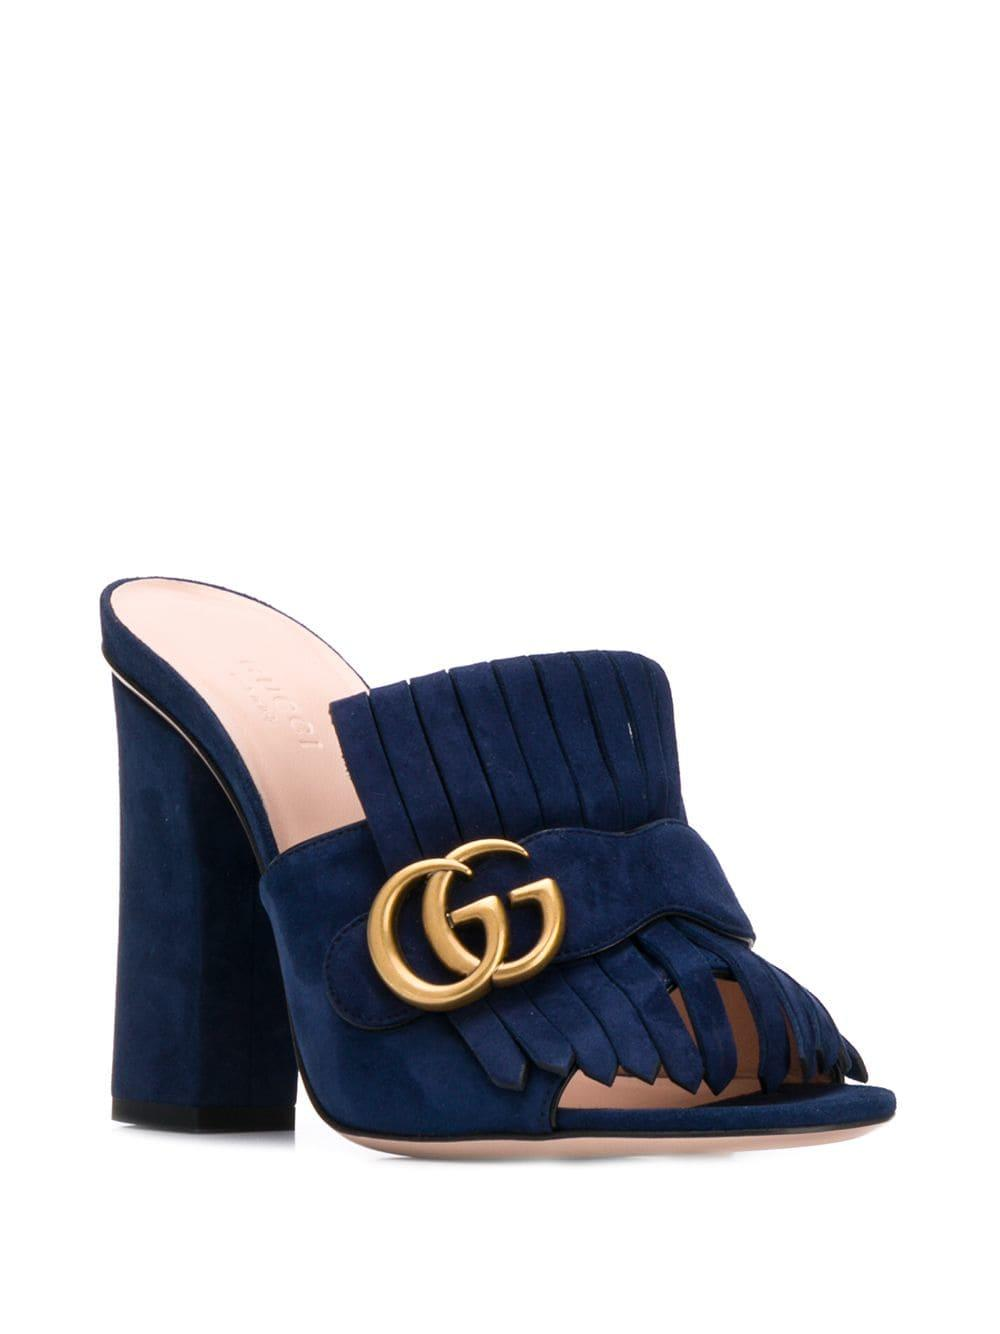 ffbe66bf0 Lyst - Gucci GG Logo Buckle Heeled Sandals in Blue